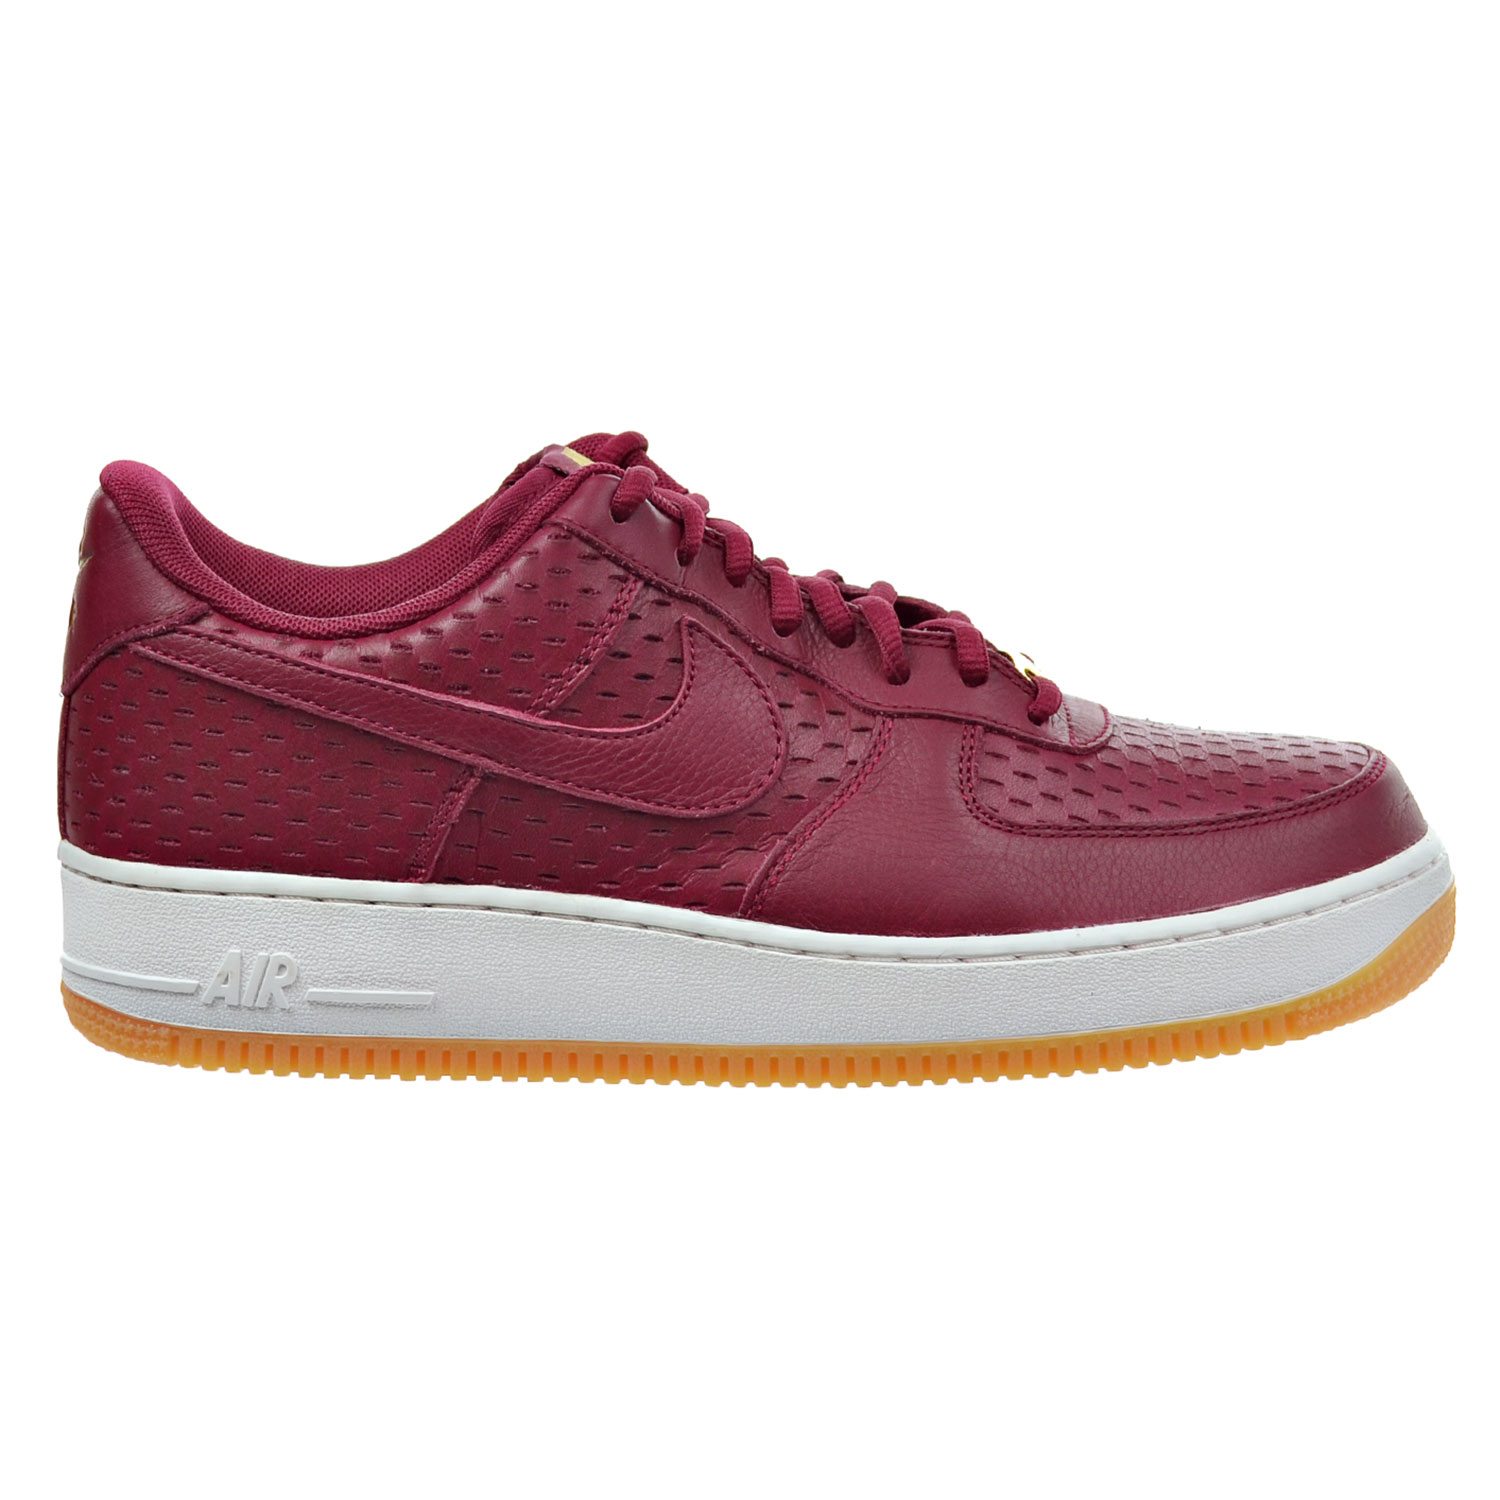 Nike Air Force 1 '07 Premium Women's Shoes Noble Red 6167...